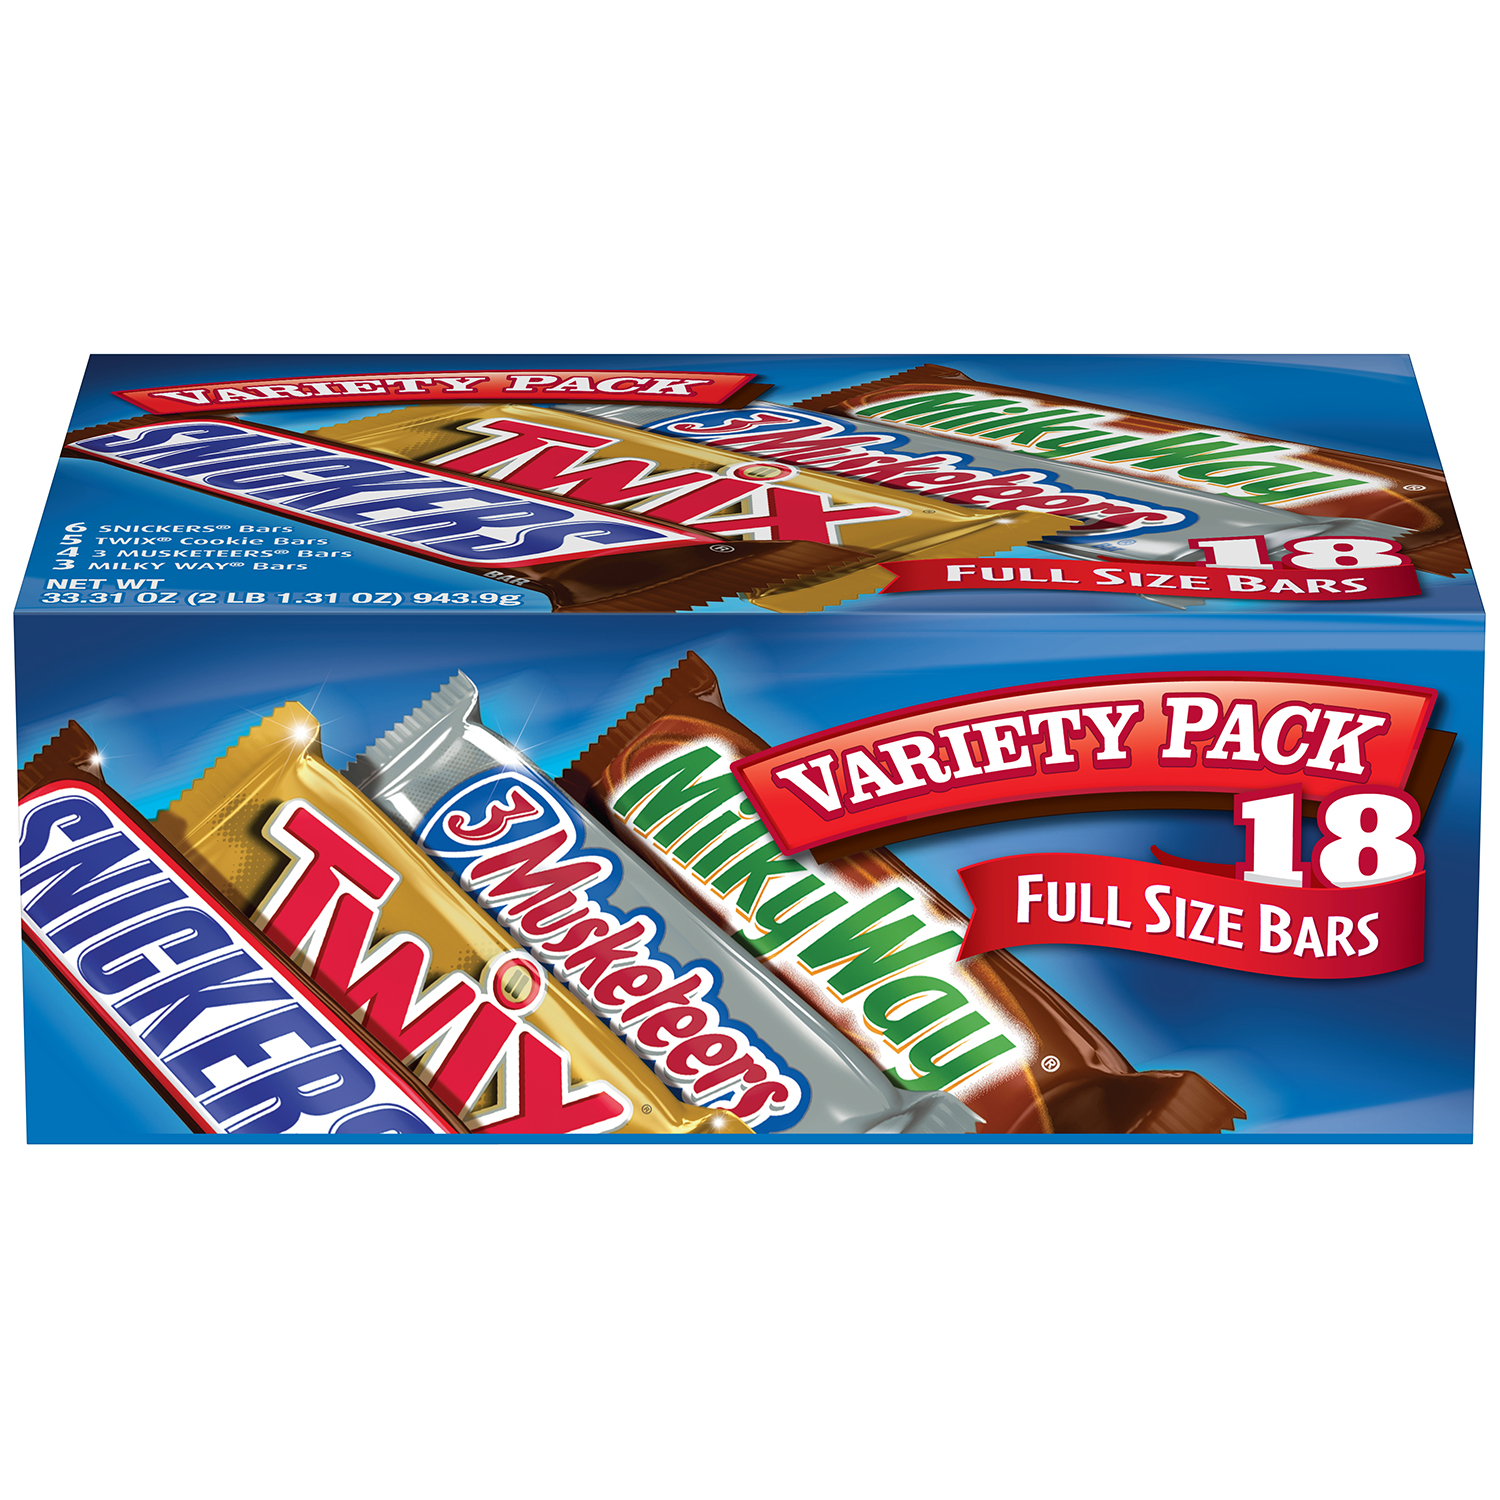 MARS Chocolate Full Size Candy Bars Assorted Variety Box (TWIX, MILKY WAY, SNICKERS 3 MUSKETEERS Brands), 33.31 oz 18 Pieces